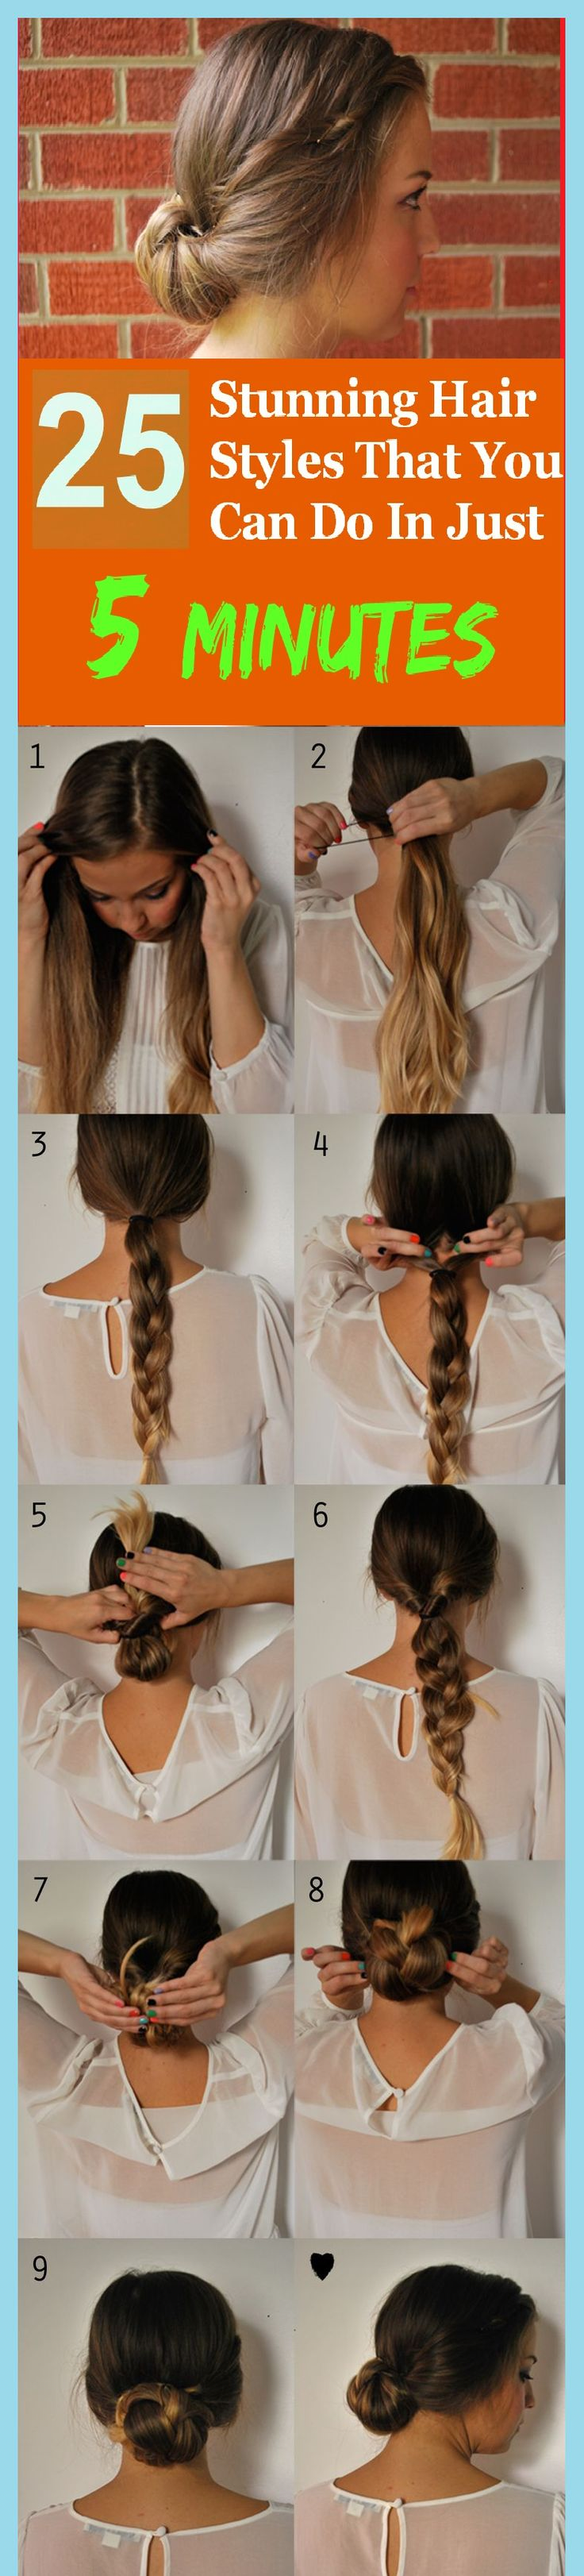 25 Stunning Hair Styles That You Can Do In Just 5 Minutes #SummerHairStyles